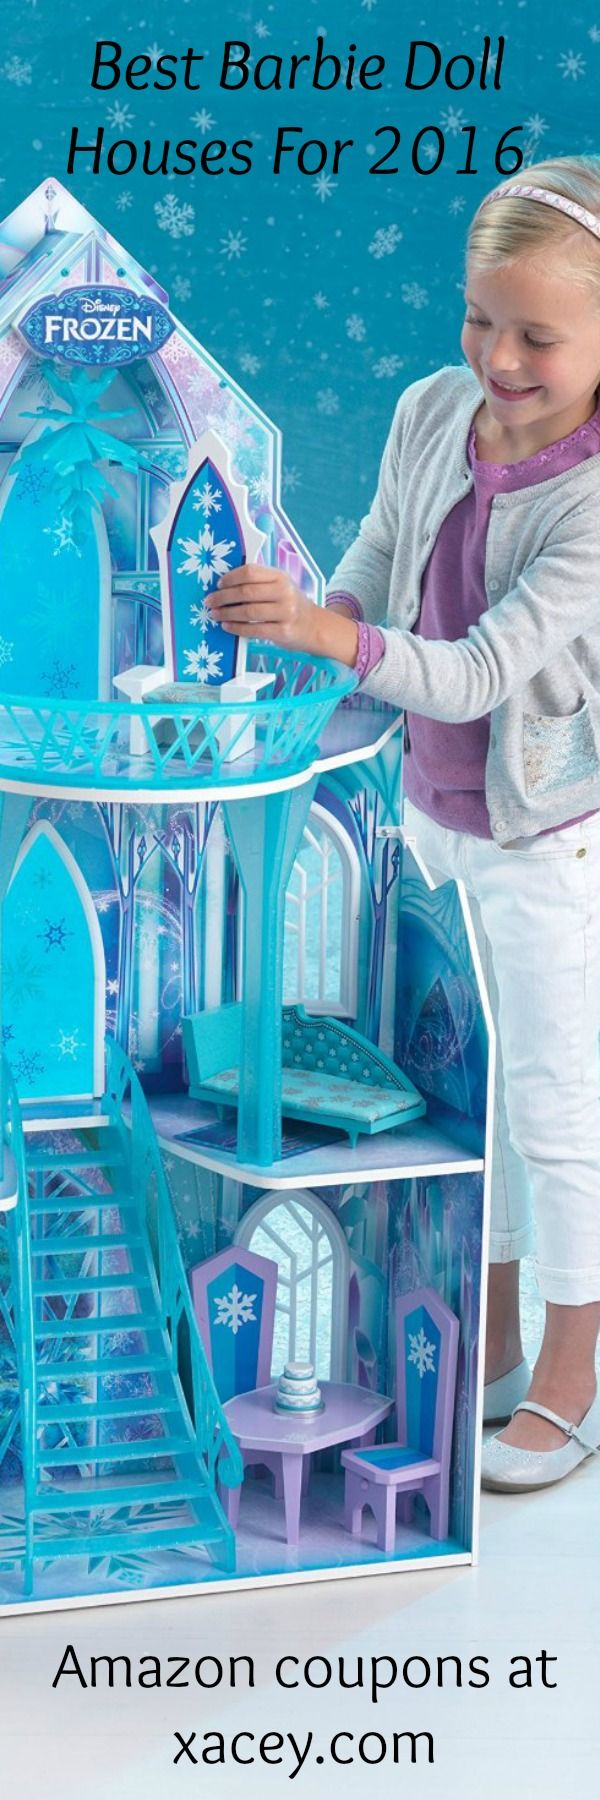 Frozen girls gift, frozen doll house, holiday gift. Sweet doll house that makes my little girls so happy and keeps her entertained for hours